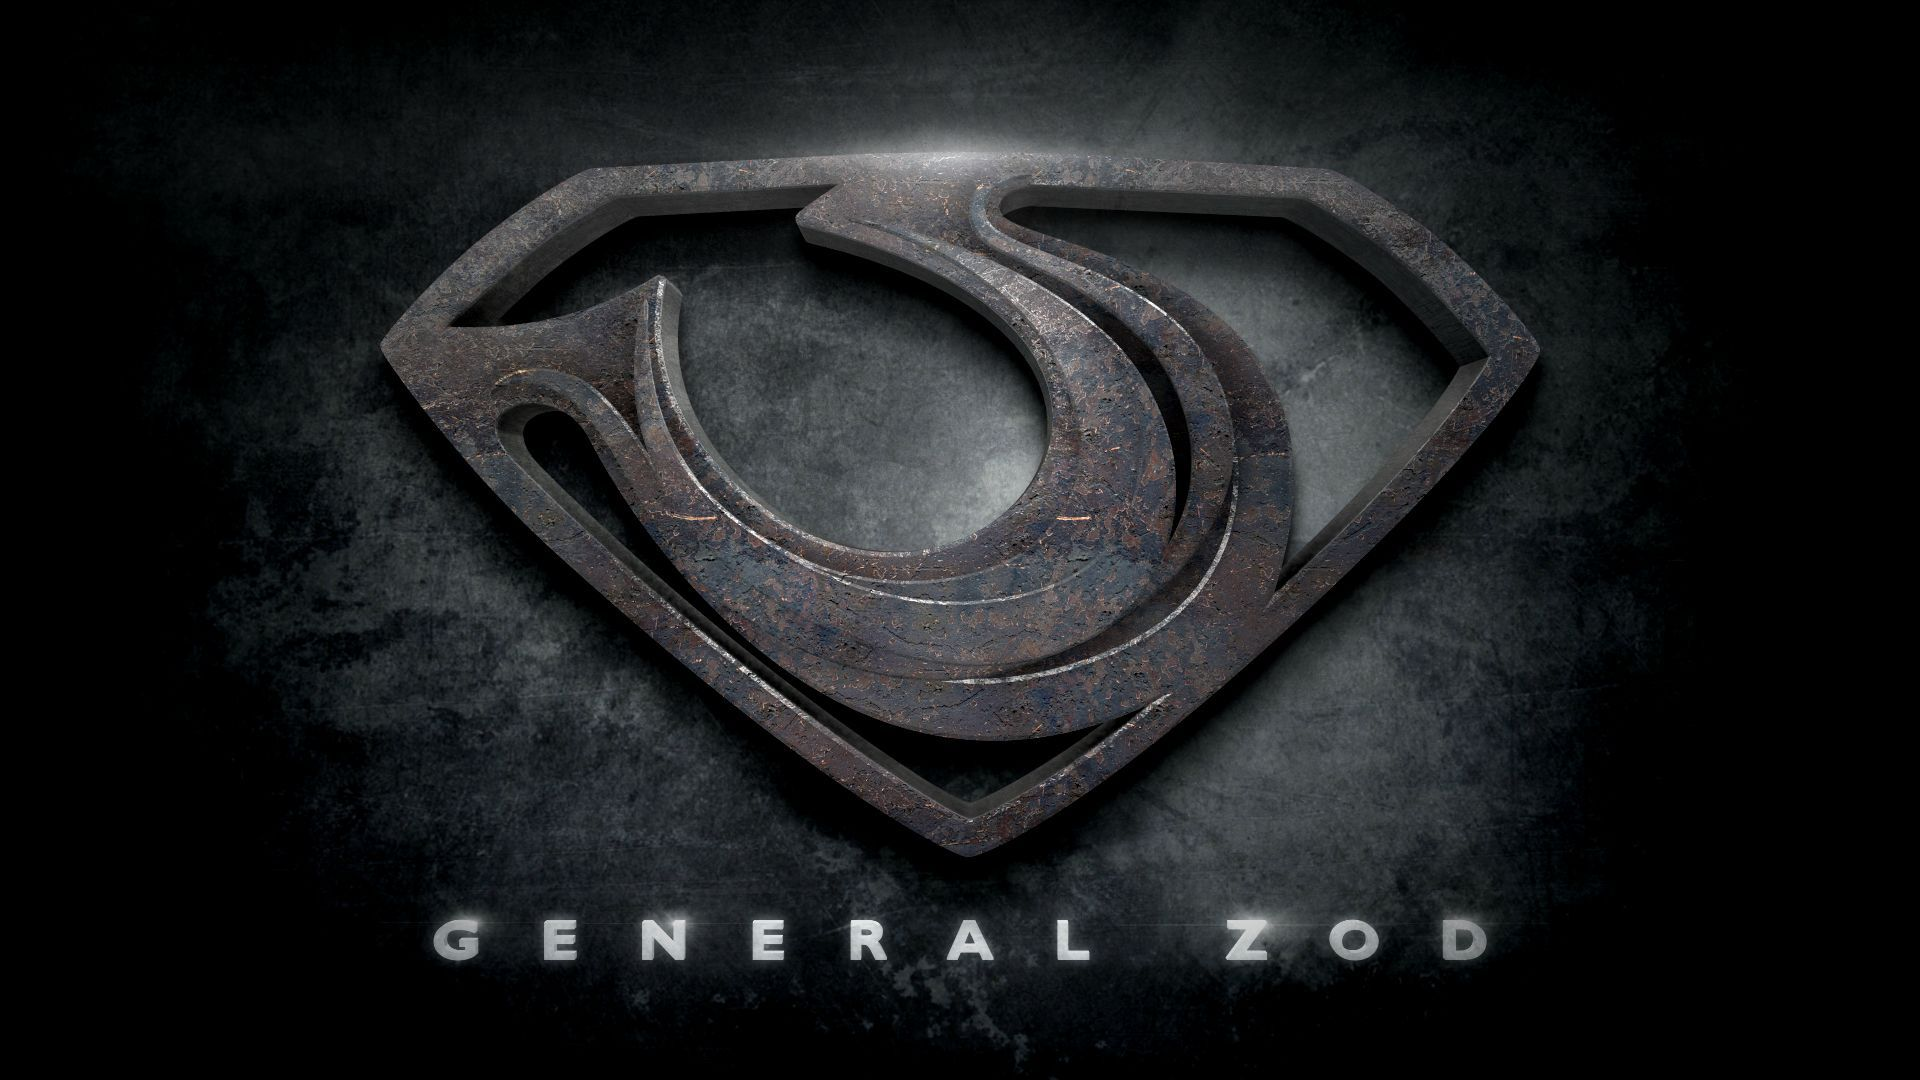 Justice league logos in the style of man of steel general zod justice league logos in the style of man of steel biocorpaavc